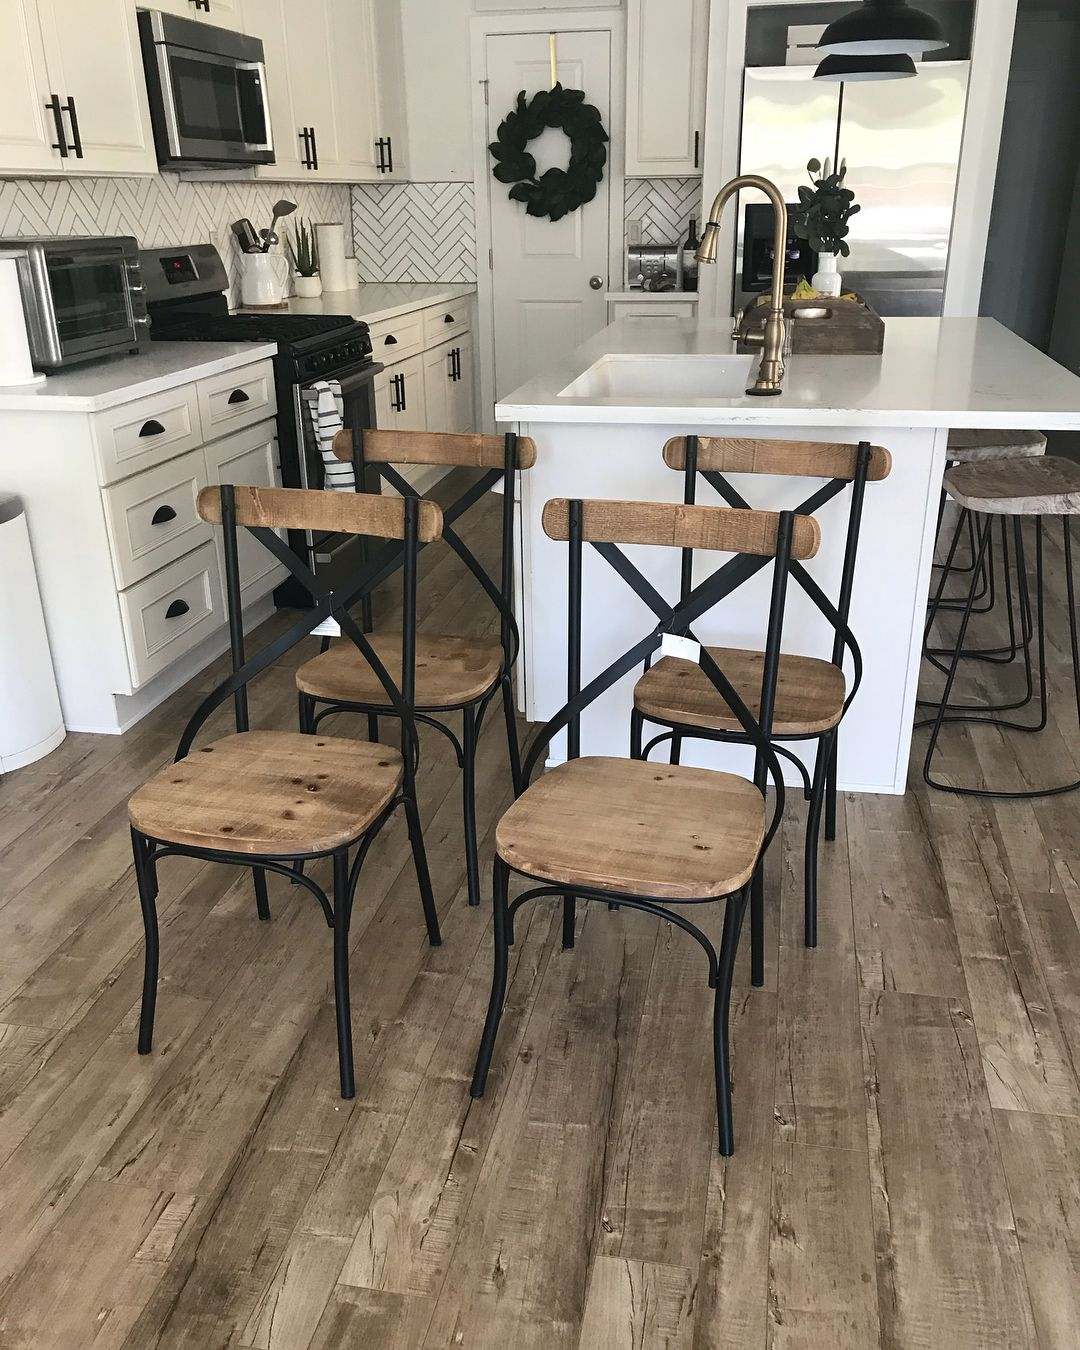 Brown and black brand new rustic farmhouse dining chairs